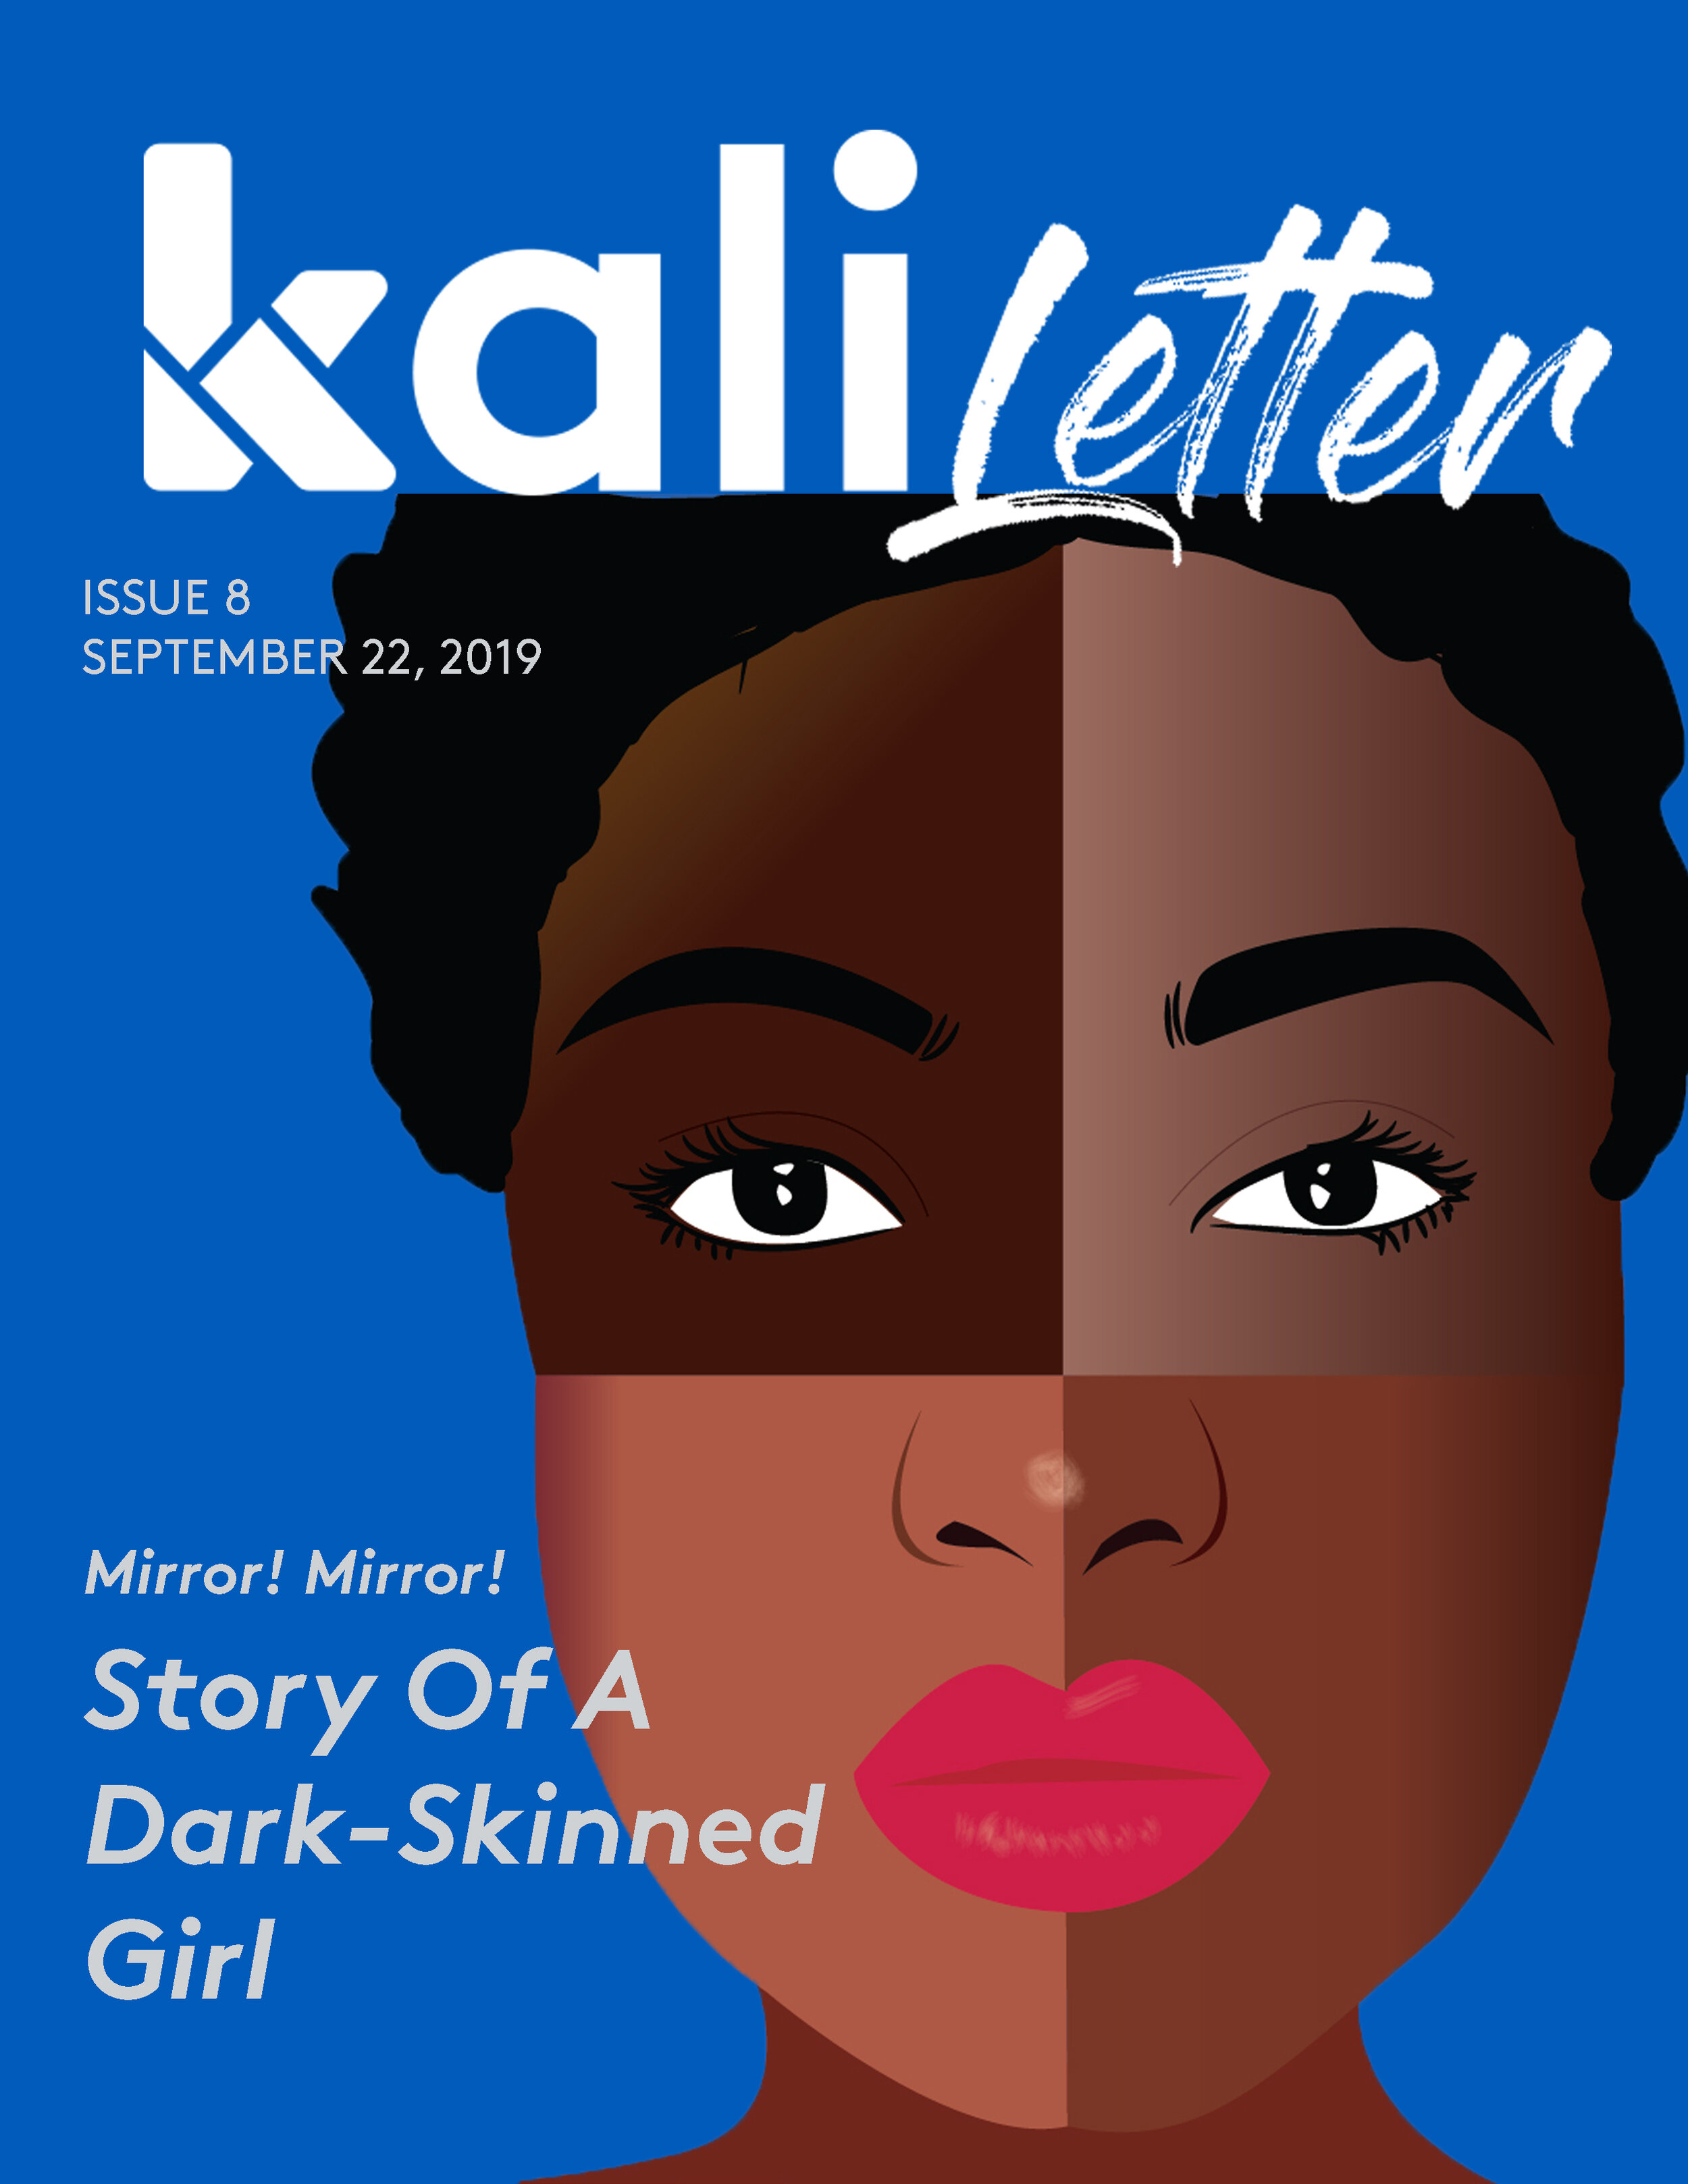 MIRROR! MIRROR! STORY OF A DARK SKINNED GIRL     Issue #:  8  Release Date:   September 22, 2019    Growing up in Uganda, writer Hilda Awori grappled with her own reflection in the mirror as she navigated the depths of her own beauty alongside colourism.